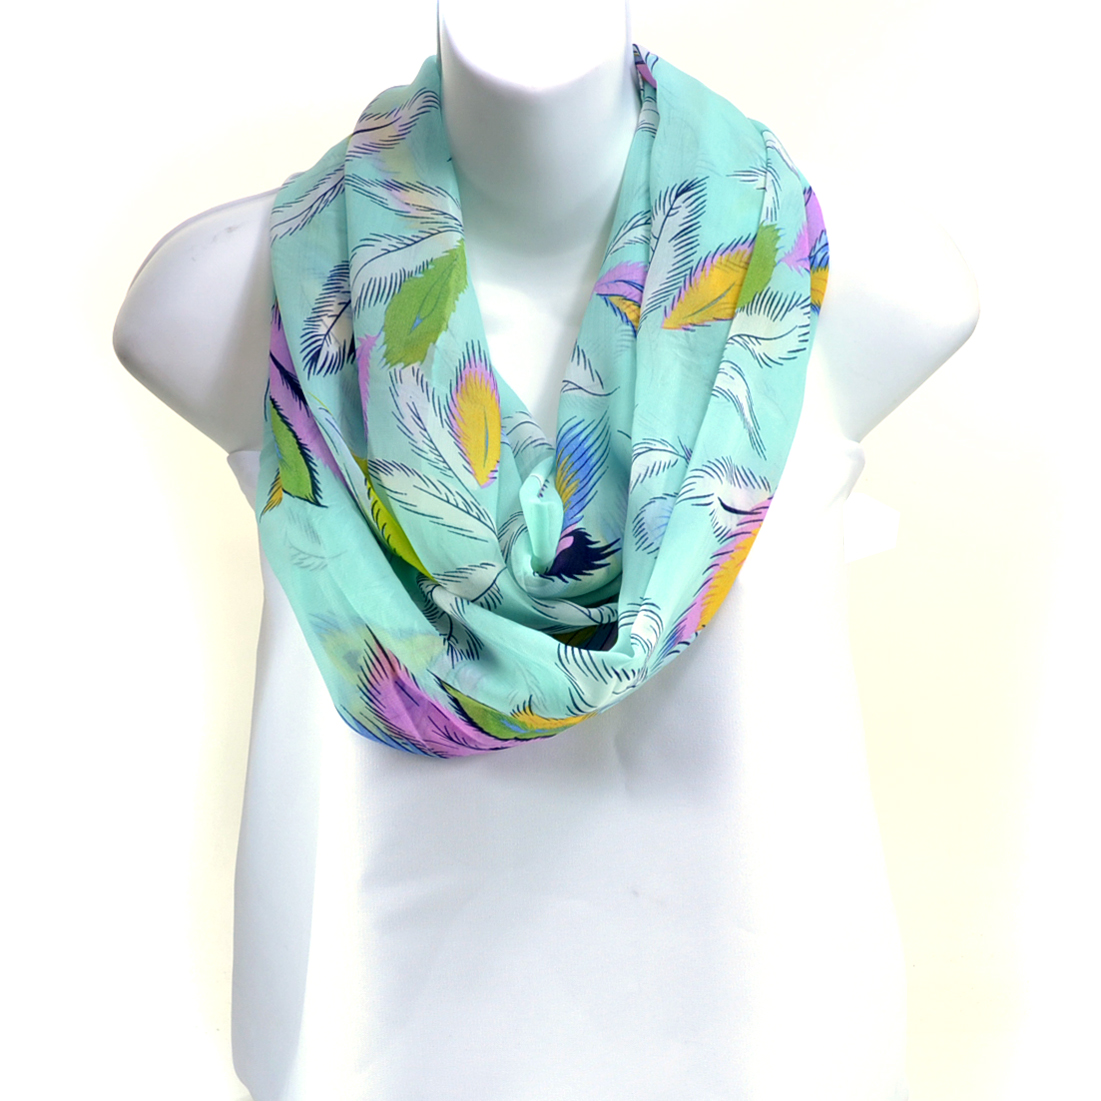 Floral Daisy Print Gauze Like Continuous Loop Light Weight Scarf